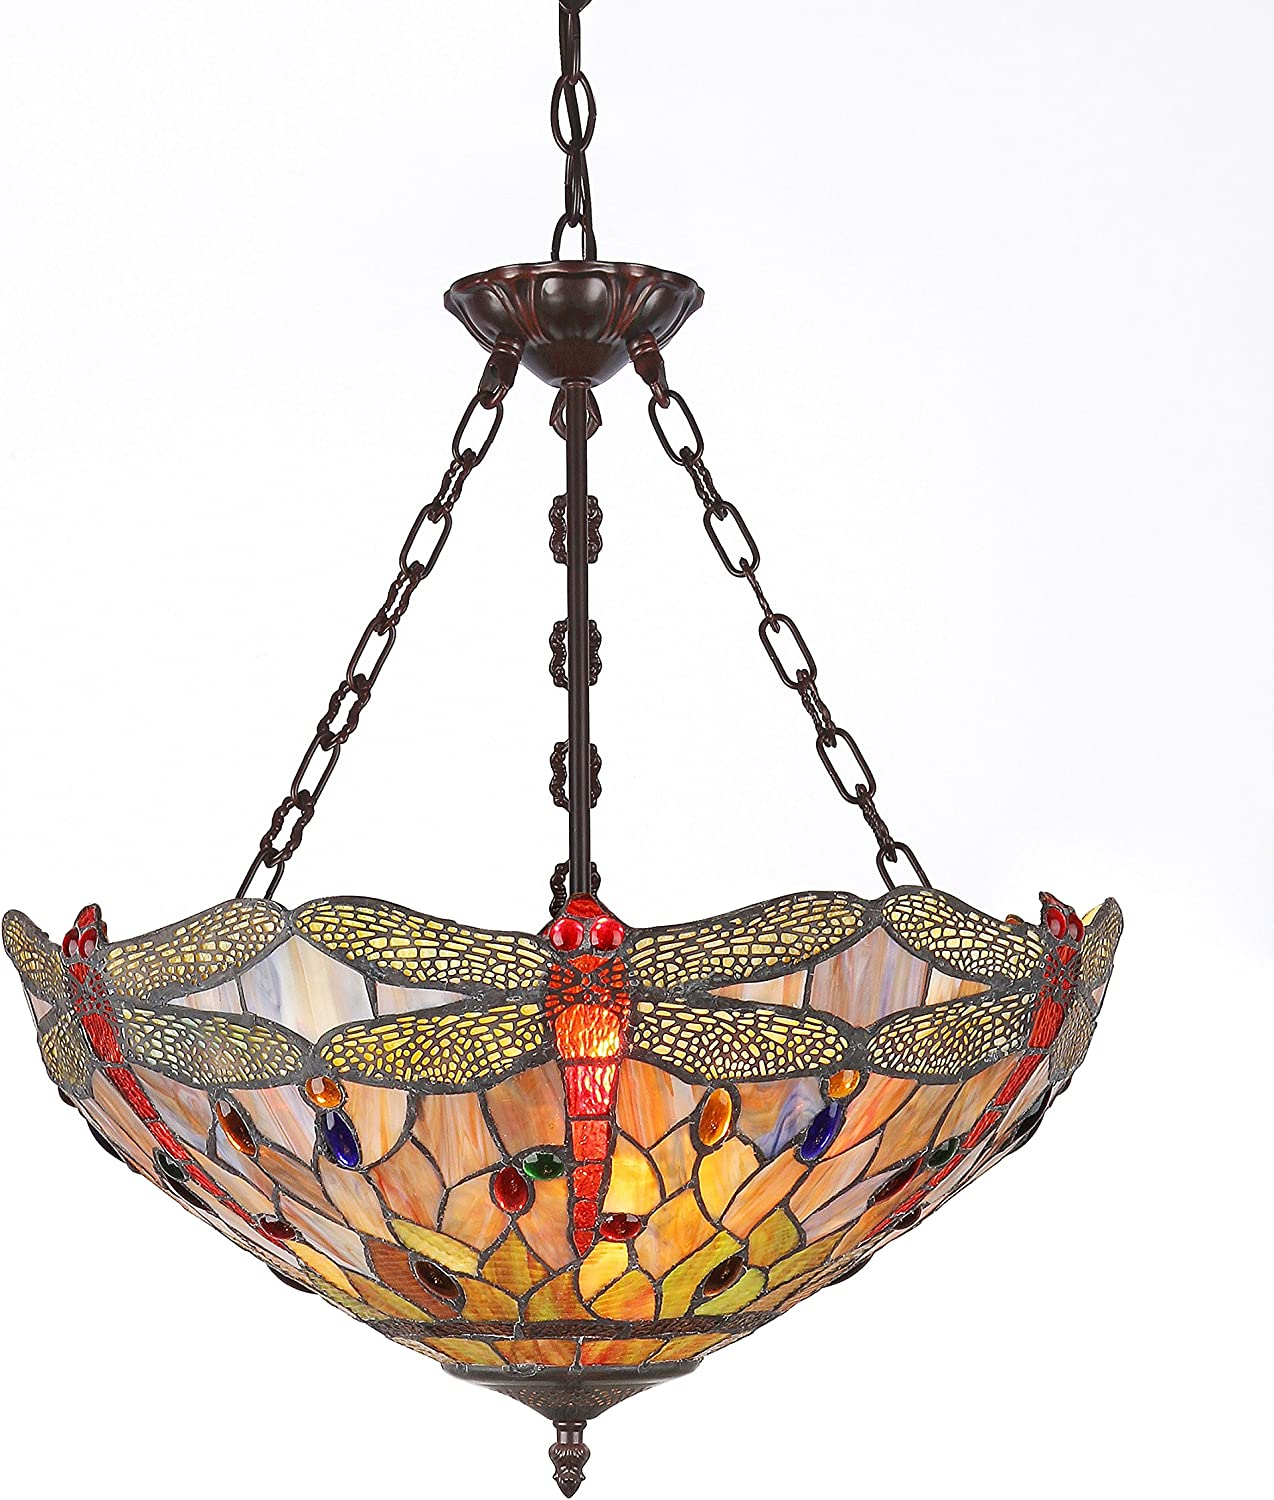 CHLOE Lighting, Inc. CH2825DB18-UH3 CHLOE Lighting Tiffany-Style Dragonfly 3-Light Inverted Ceiling Pendant Fixture with Shade, 18 x 18 x 23